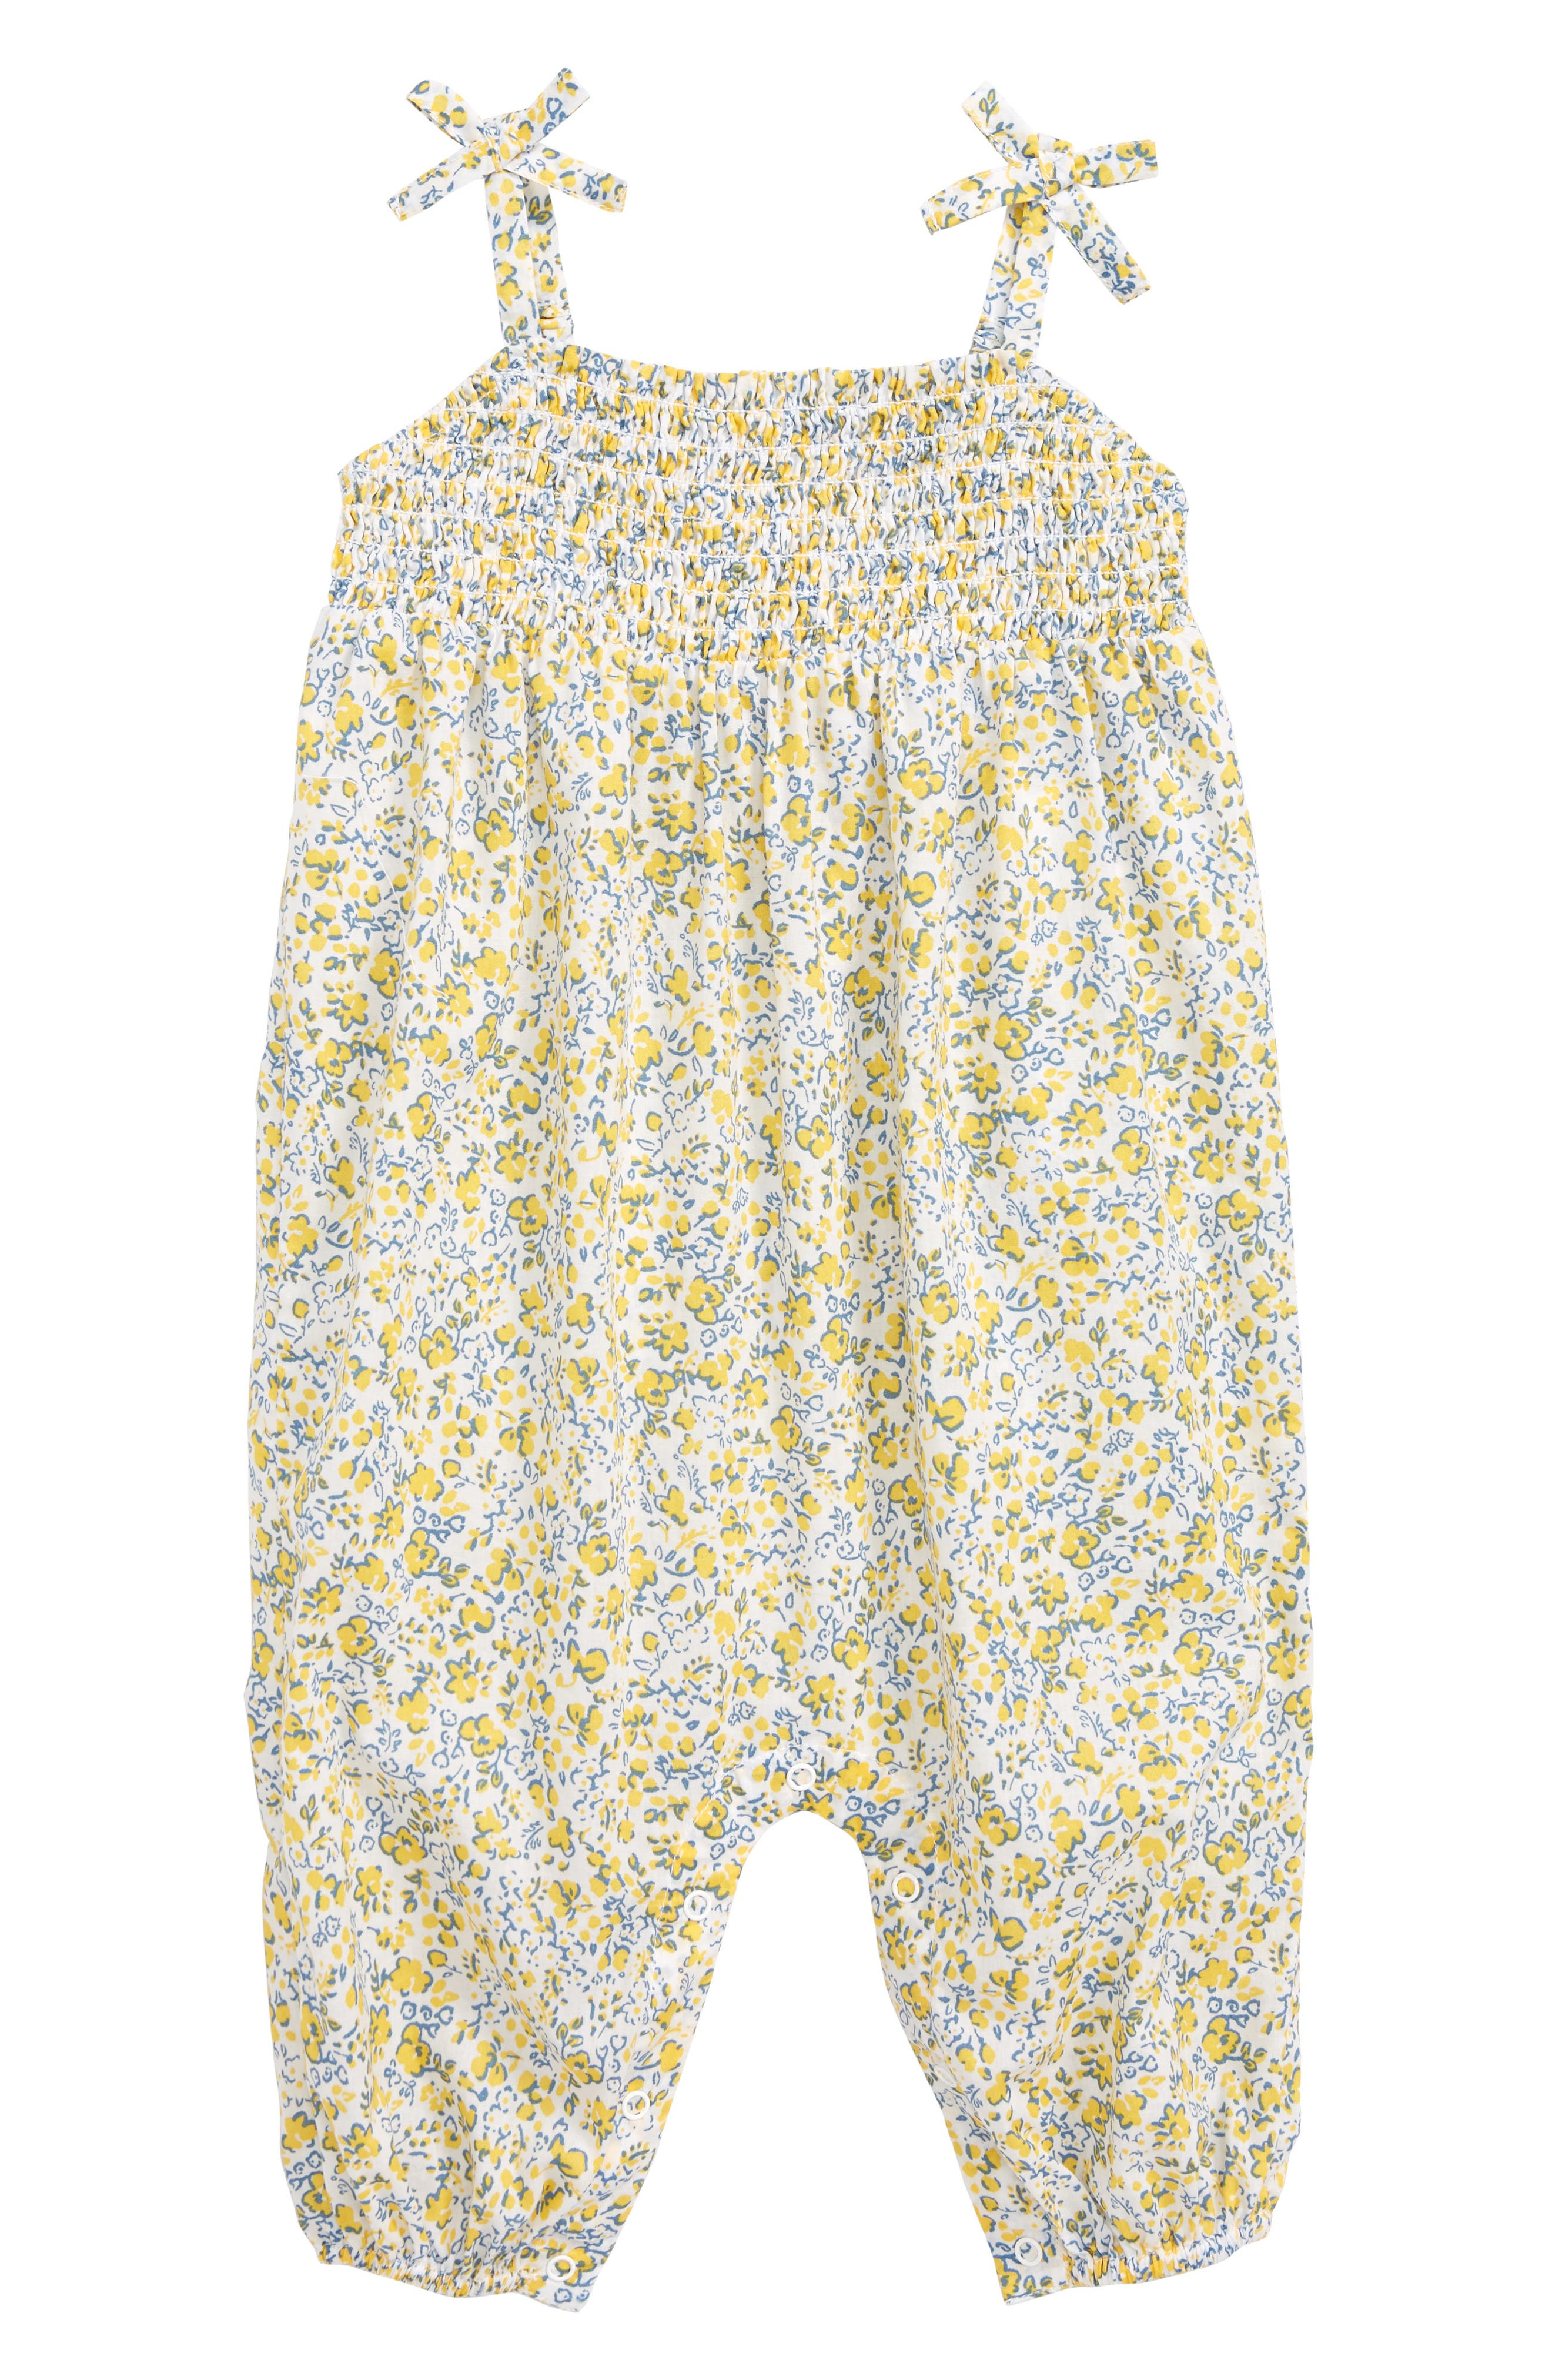 Ditzy Smock Romper,                             Main thumbnail 1, color,                             White- Yellow Tonal Ditsy